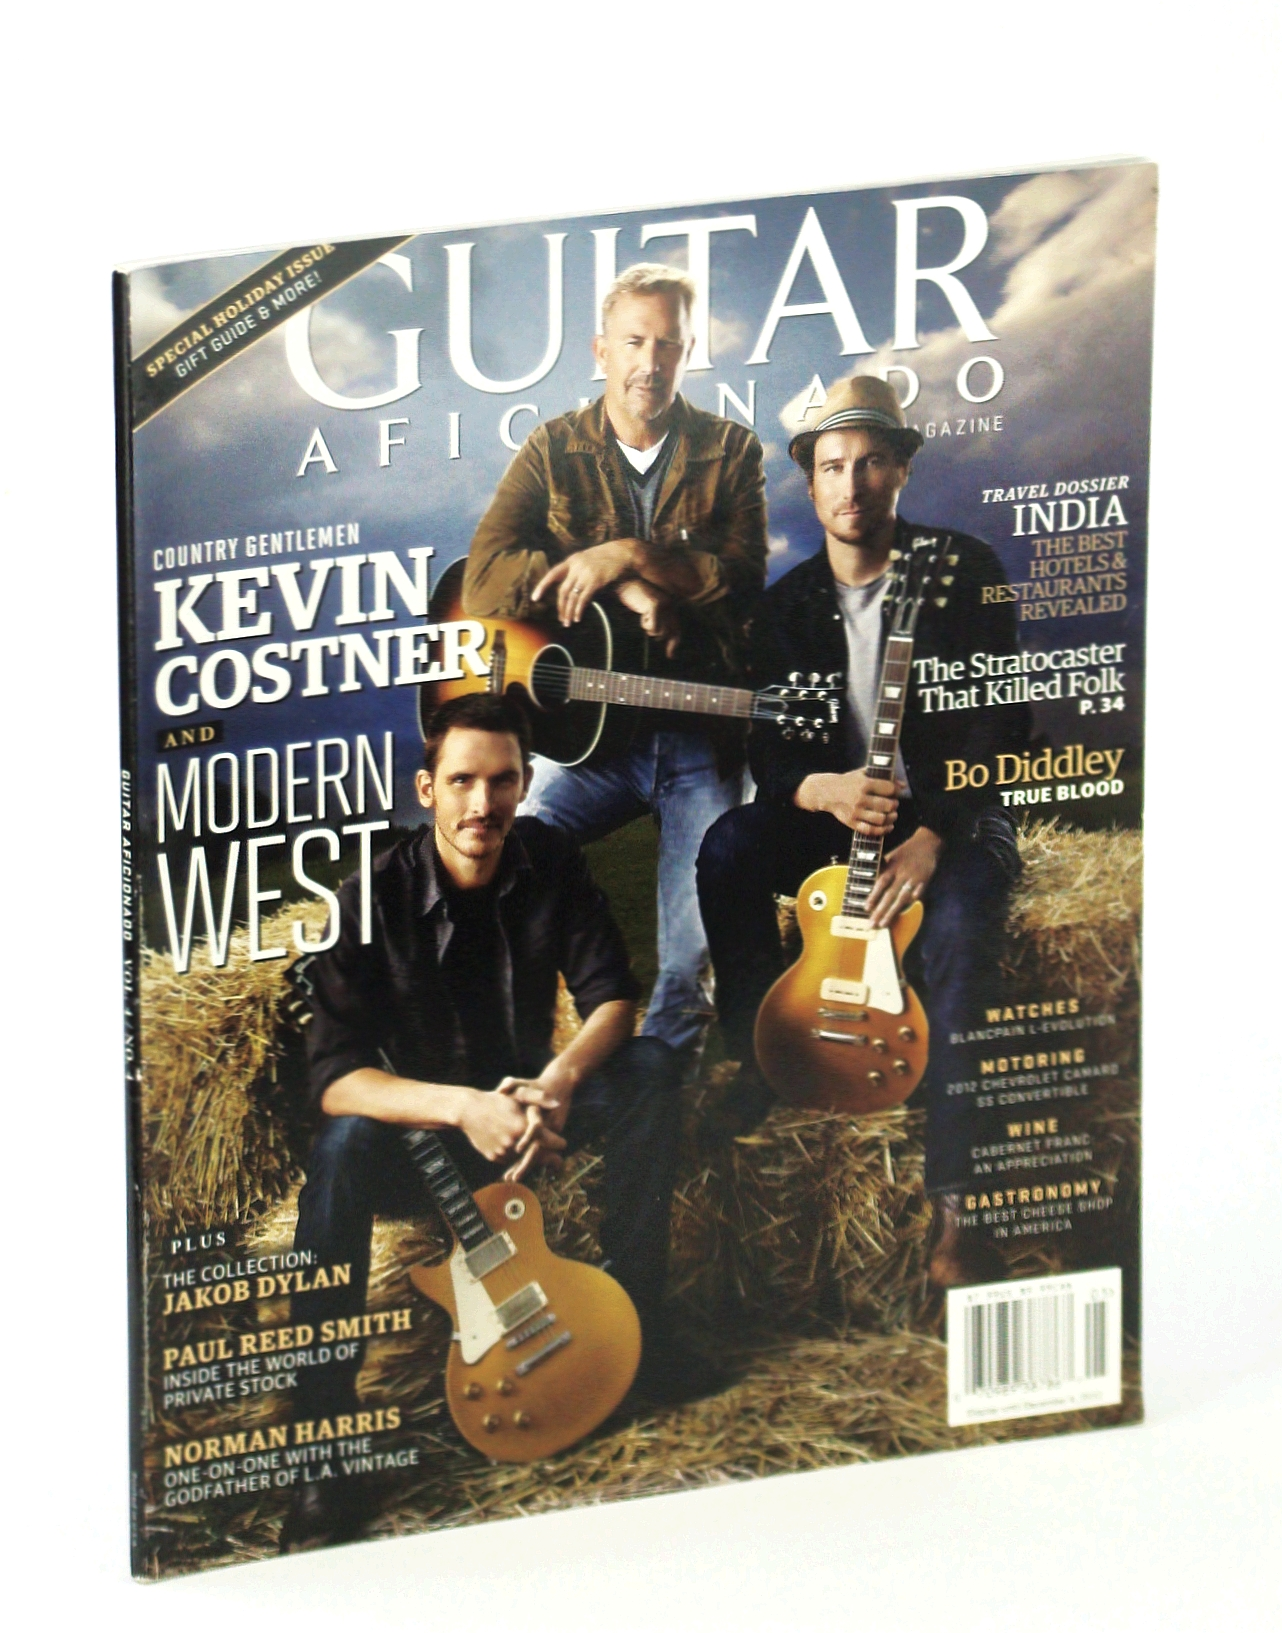 Image for Guitar Aficionado Magazine, October [Oct.] - November [Nov.] 2012, Vol 4, No. 4 - Kevin Costner and Modern West